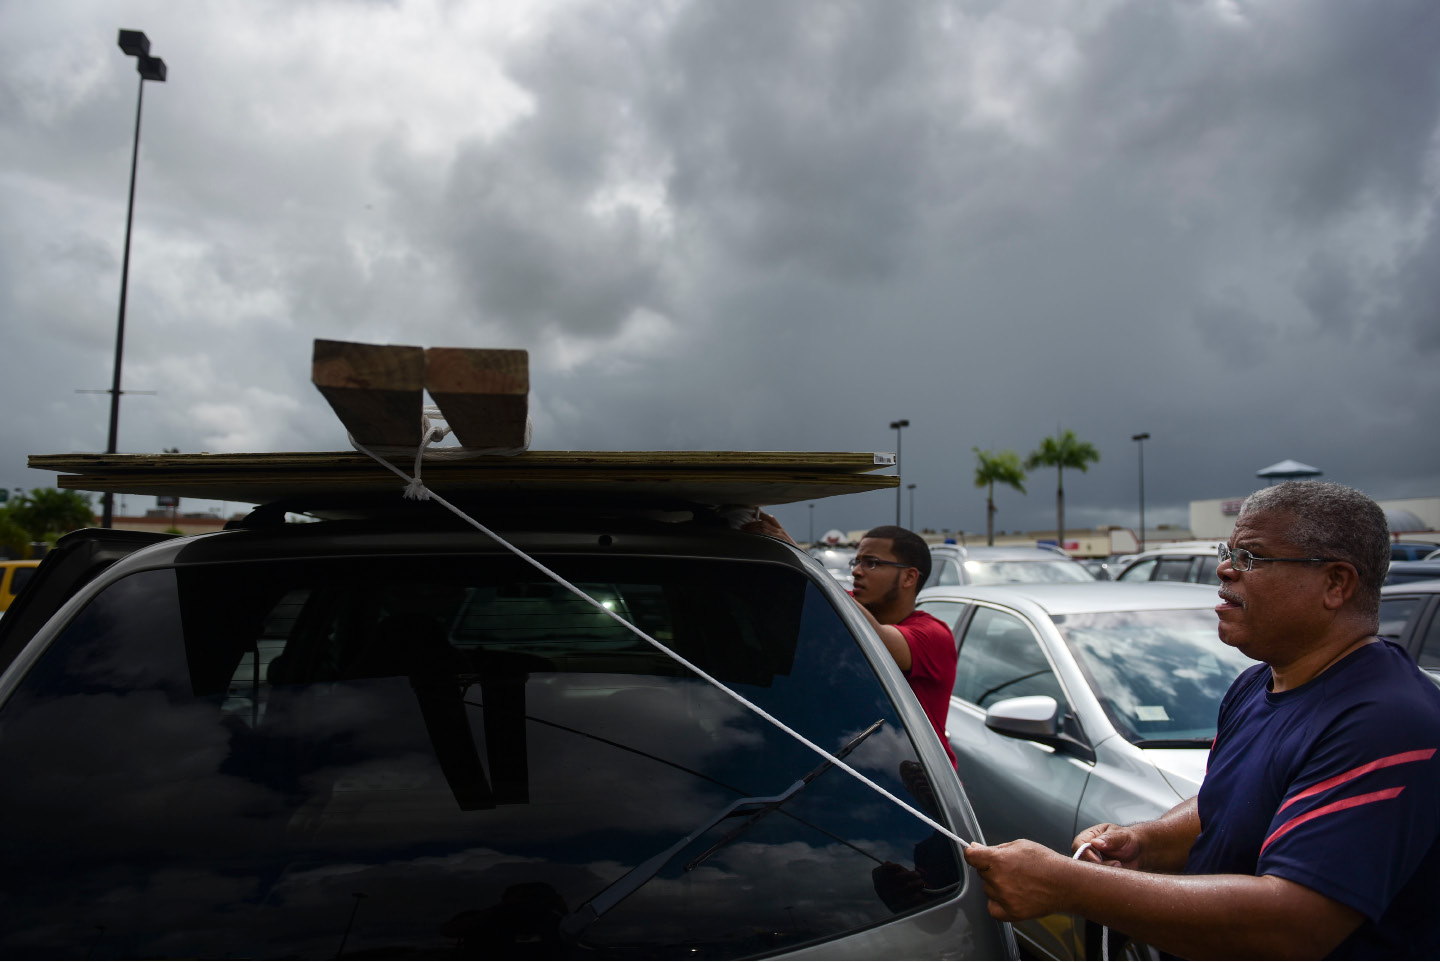 Men tie down wood panels to be used for boarding up windows in preparation for Hurricane Irma, in Carolina, Puerto Rico, Tuesday, Sept. 5, 2017. Irma grew into a dangerous Category 5 storm, the most powerful seen in the Atlantic in over a decade, and roared toward islands in the northeast Caribbean Tuesday. (AP Photo/Carlos Giusti)